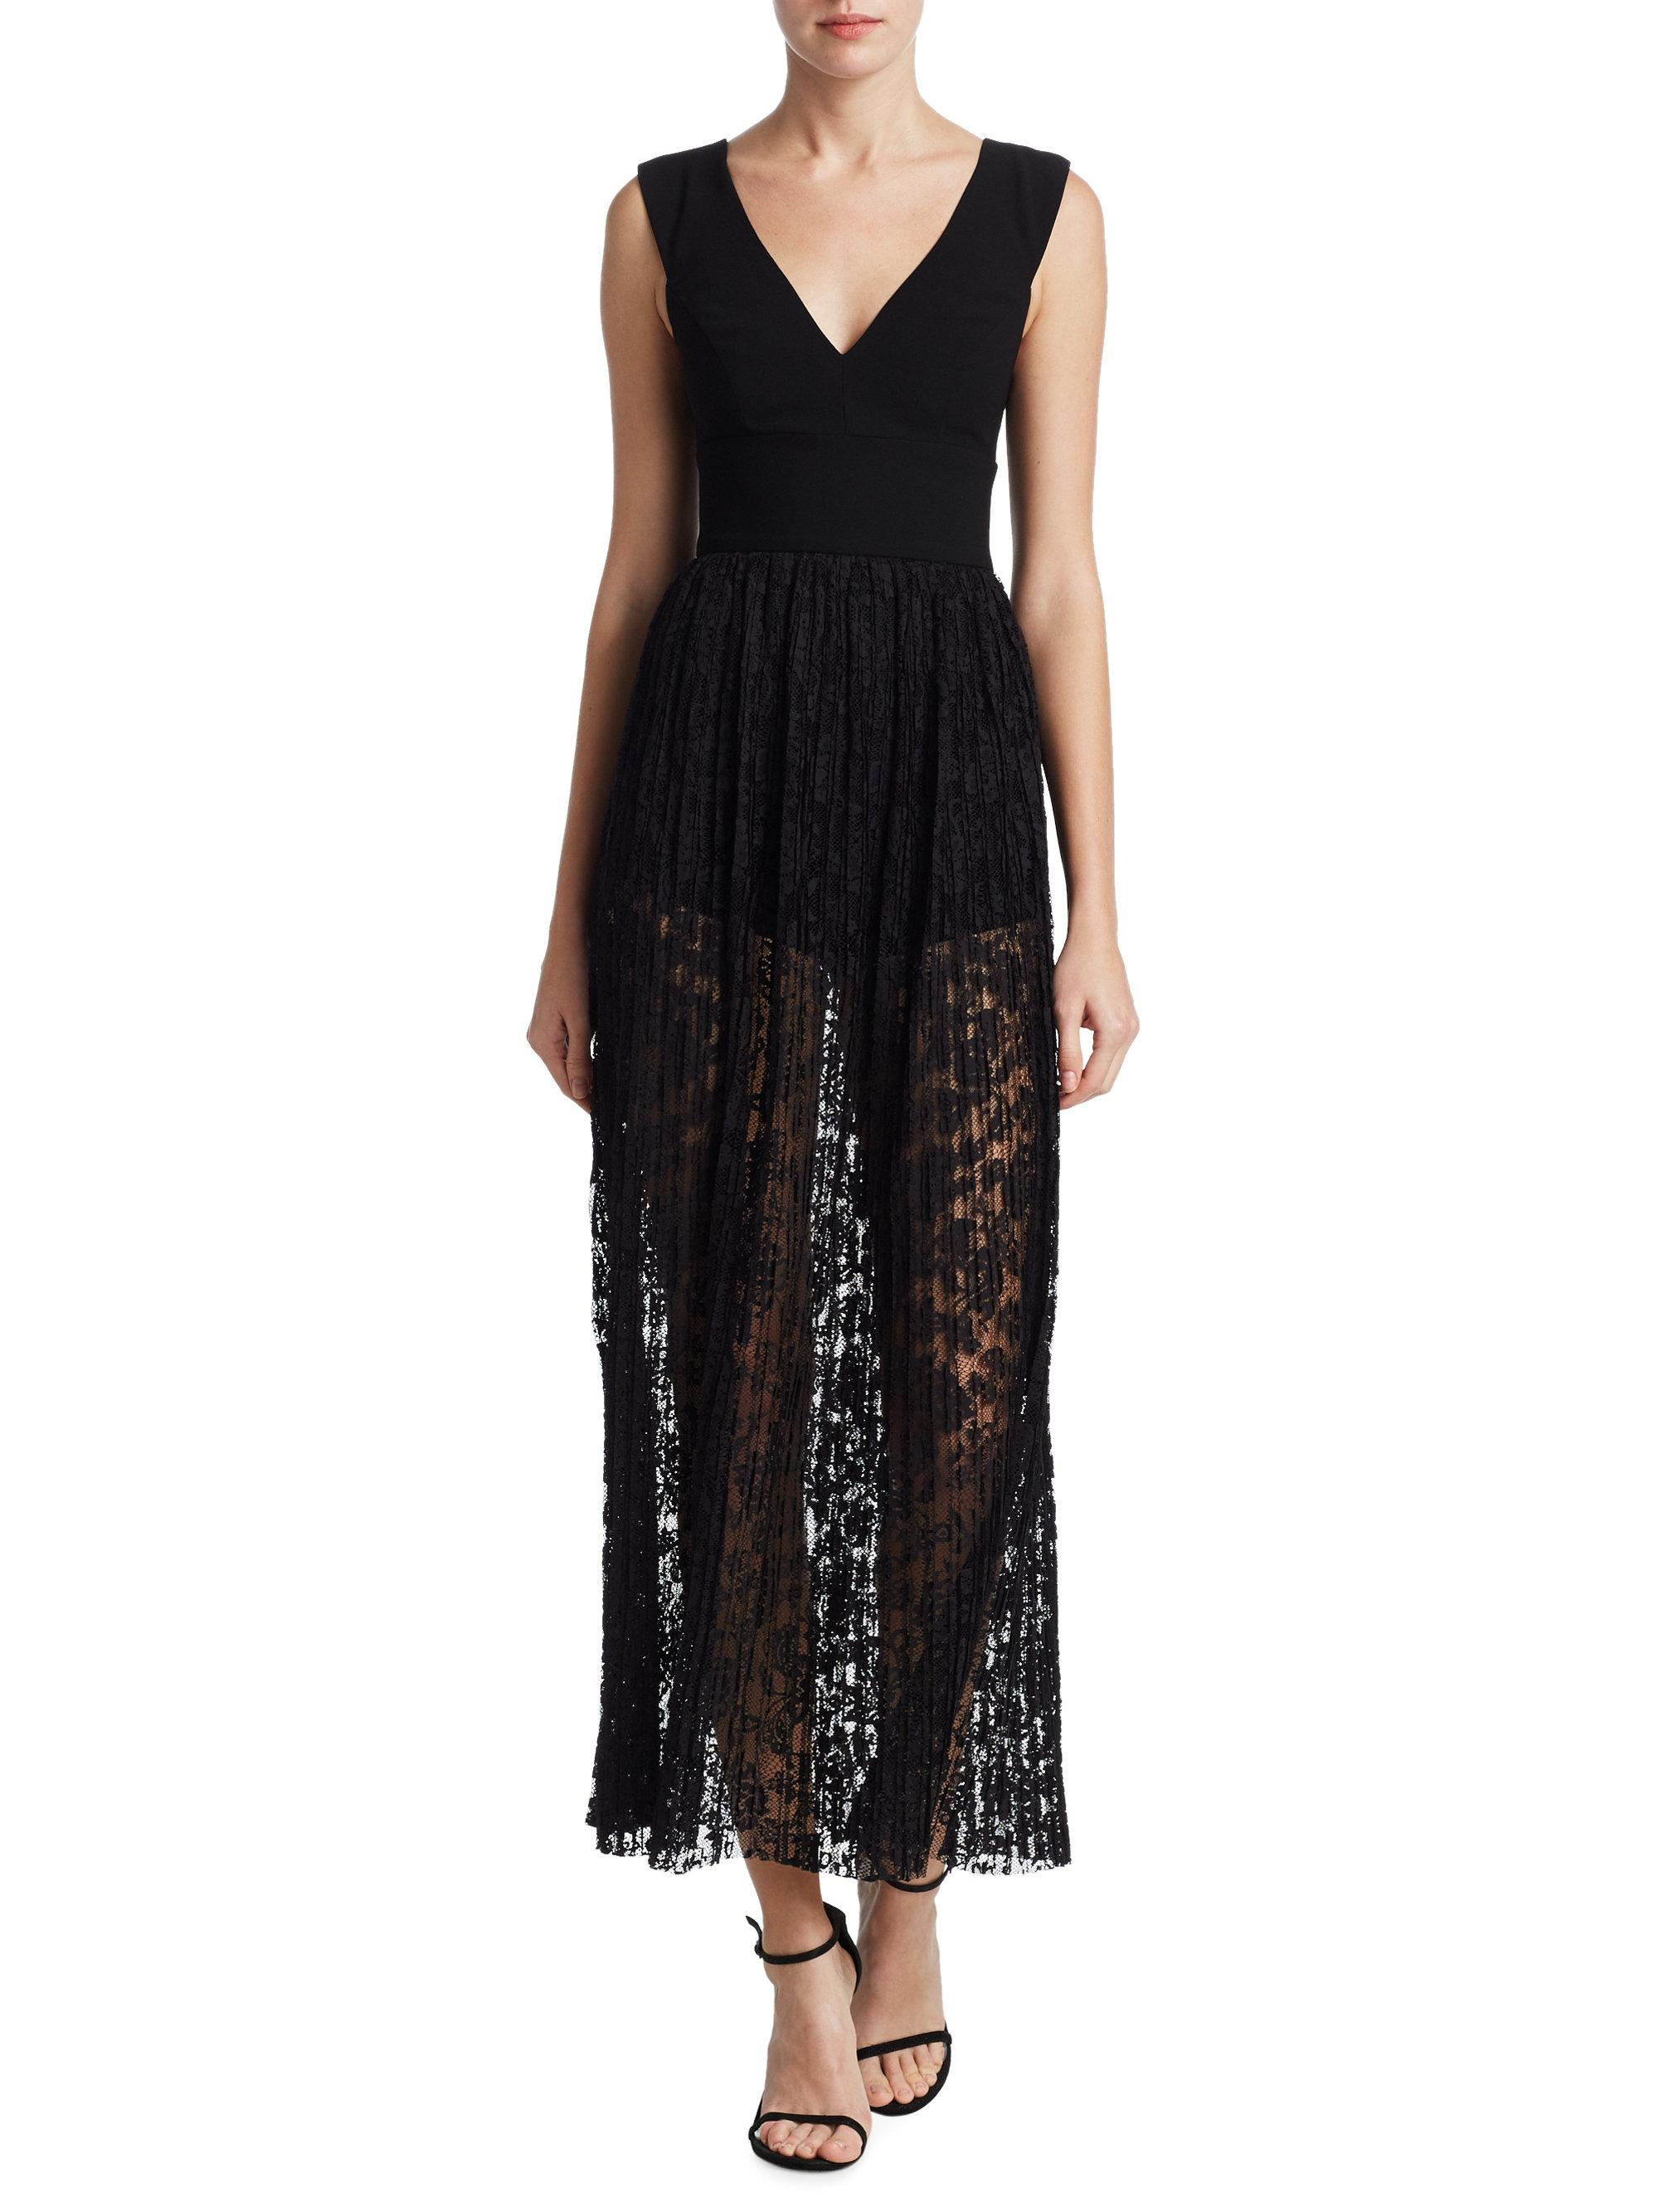 bc58869bf106 Lyst - ML Monique Lhuillier Lace Overlay Romper in Black